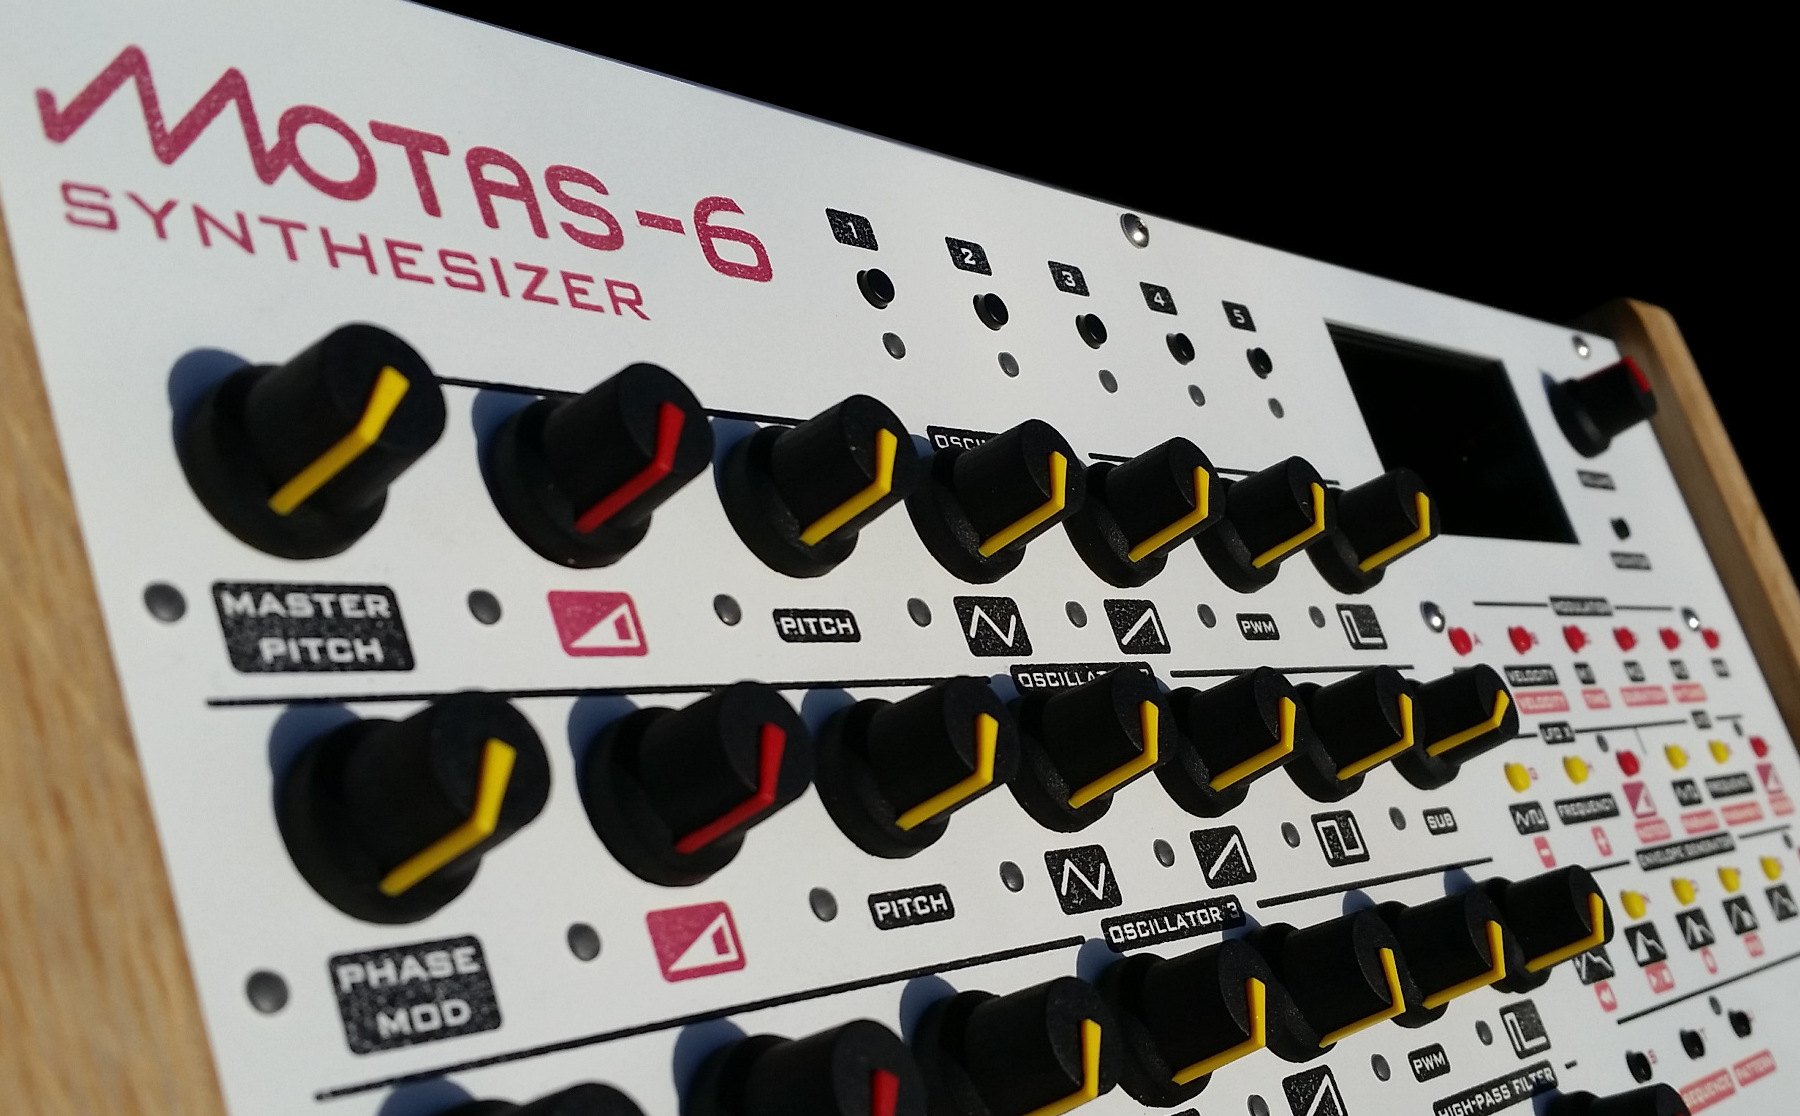 motas-6 synth with white panel finish